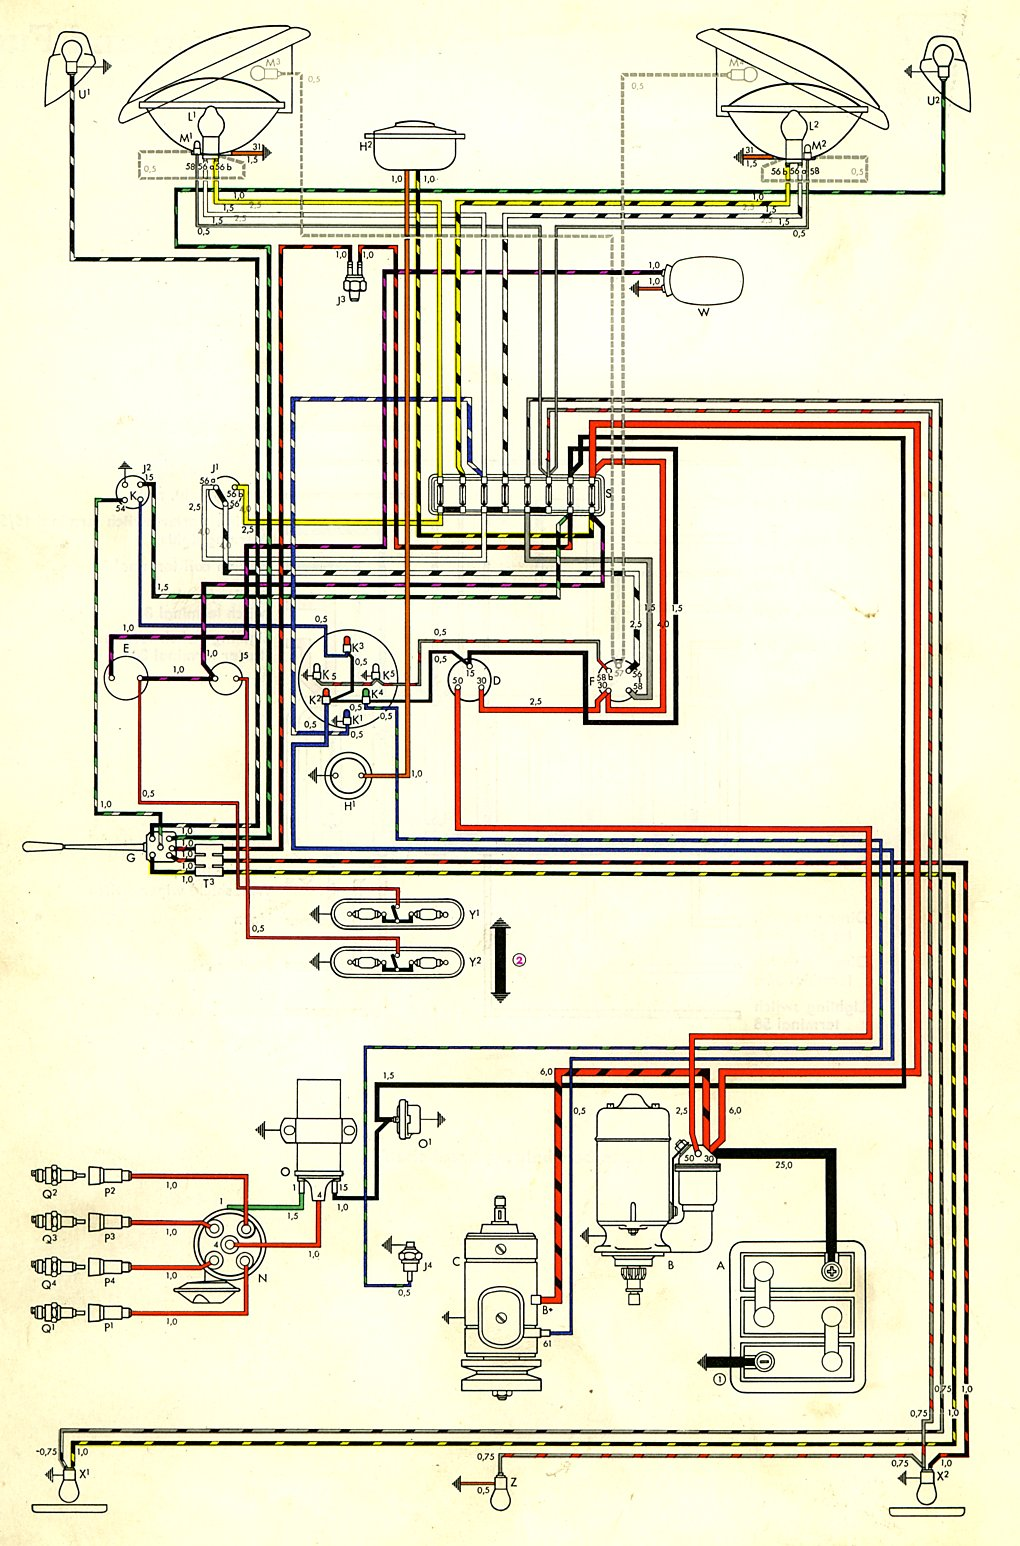 1969 chevy truck ignition wiring diagram 1971 chevy truck